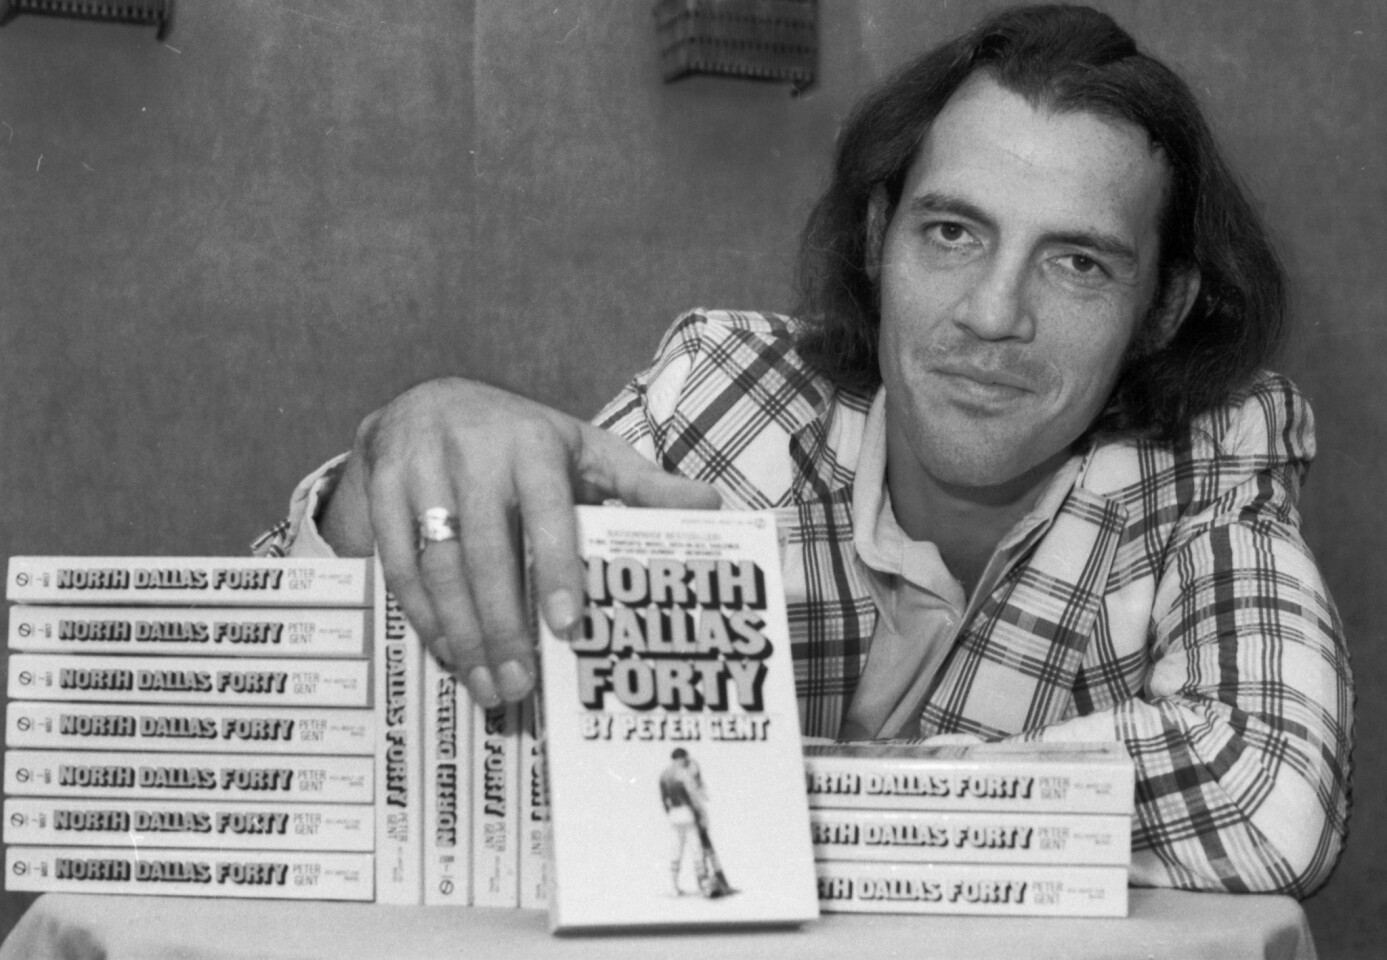 """Former Dallas Cowboy Peter Gent poses in 1974 with copies of """"North Dallas Forty,"""" his bestselling book about playing in the NFL. Gent wrote of hard-living, hard-hitting pro football players, but he wrote with style: """"It was late afternoon. In a last gasp the sun had burned away the gray sky and had disappeared into the Panhandle. The air had warmed some and the best part of the day remained. Being in Texas is a skin feeling, strongest this time of day.... I love Texas, but she drives her people crazy. I've wondered whether it's the heat, or the money, or maybe both. A republic of outlaws loosely allied with the United States, Texas survives, and survives quite well by breaking the rules."""""""